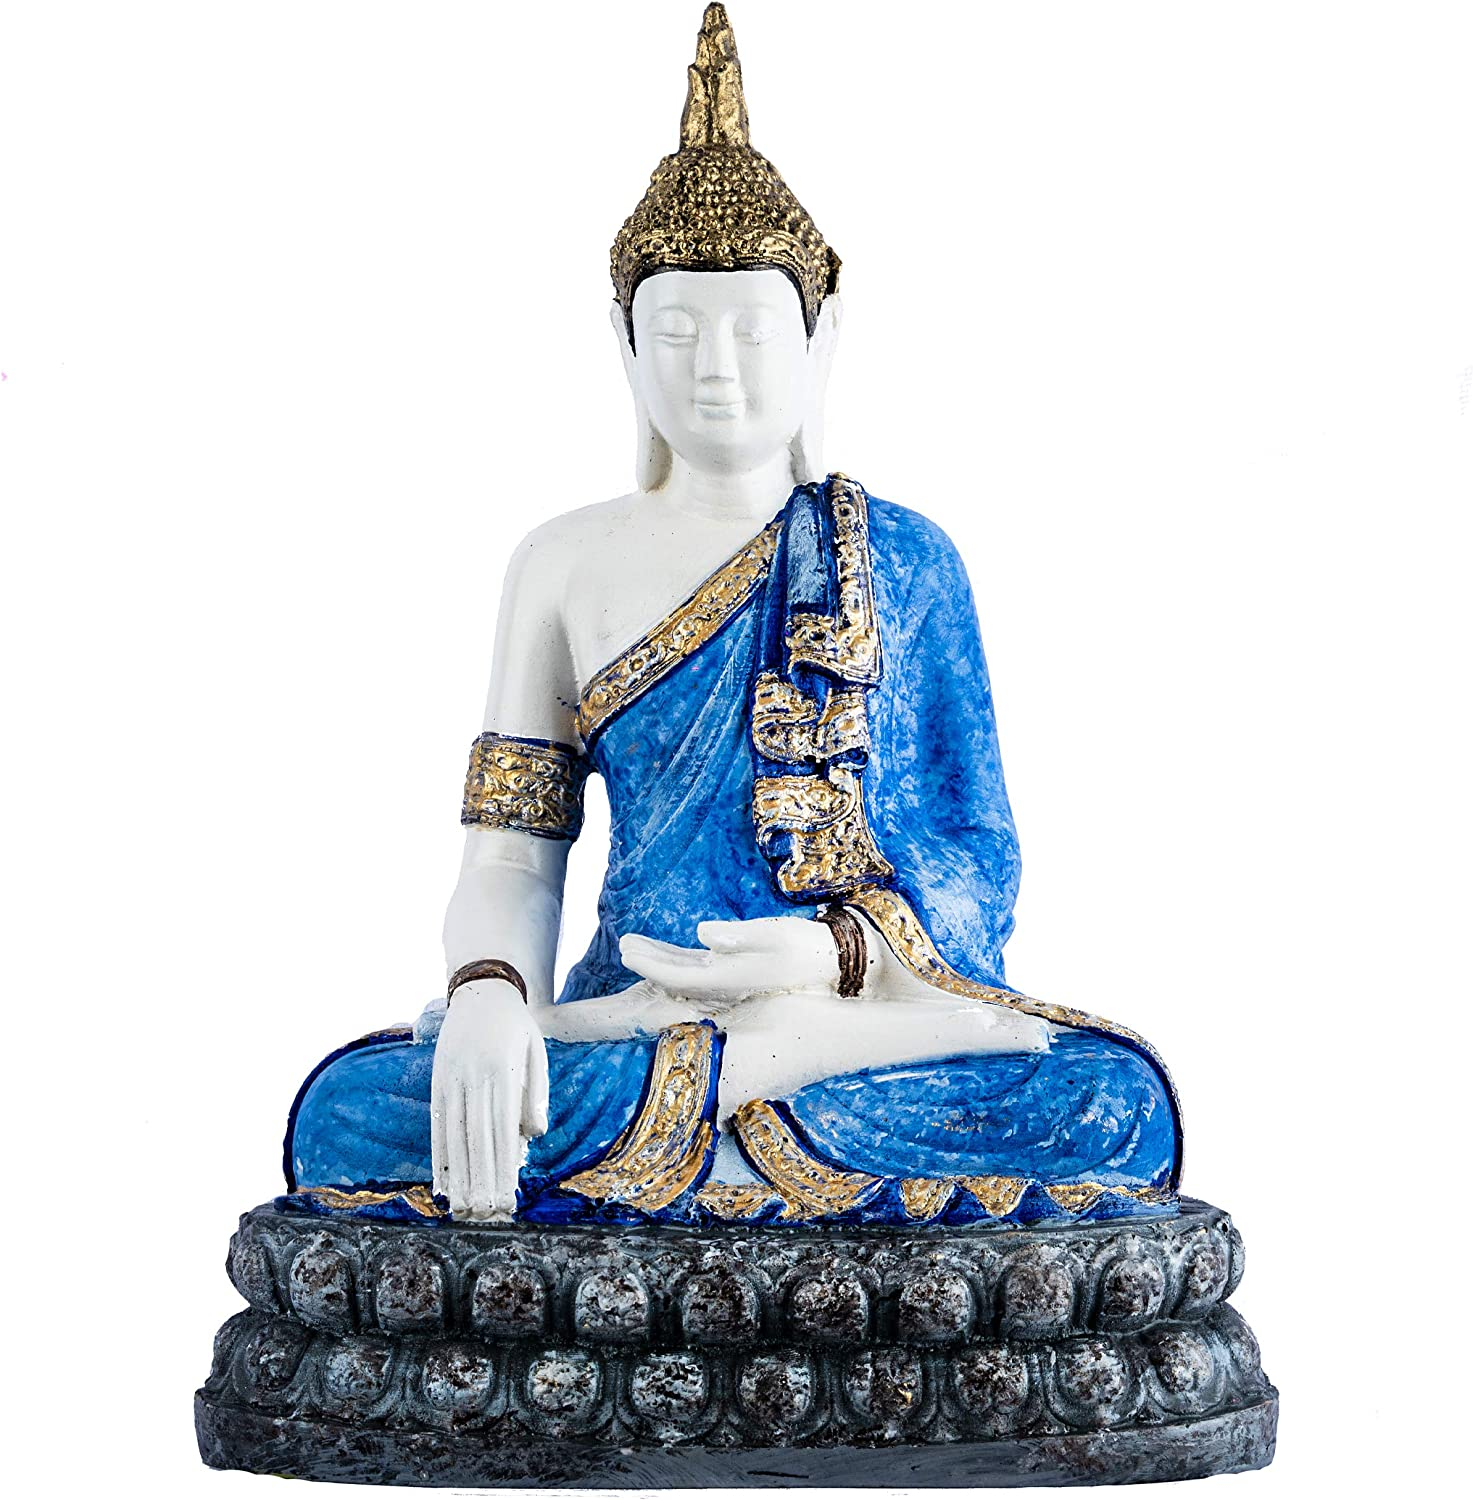 Ivana's Crafts Buddha Statue Dhyani Mudra Figurine Fengshui Praying Sitting Sculpture for Home Decor  Table Top  Office Desk   Gifting   (Blue)